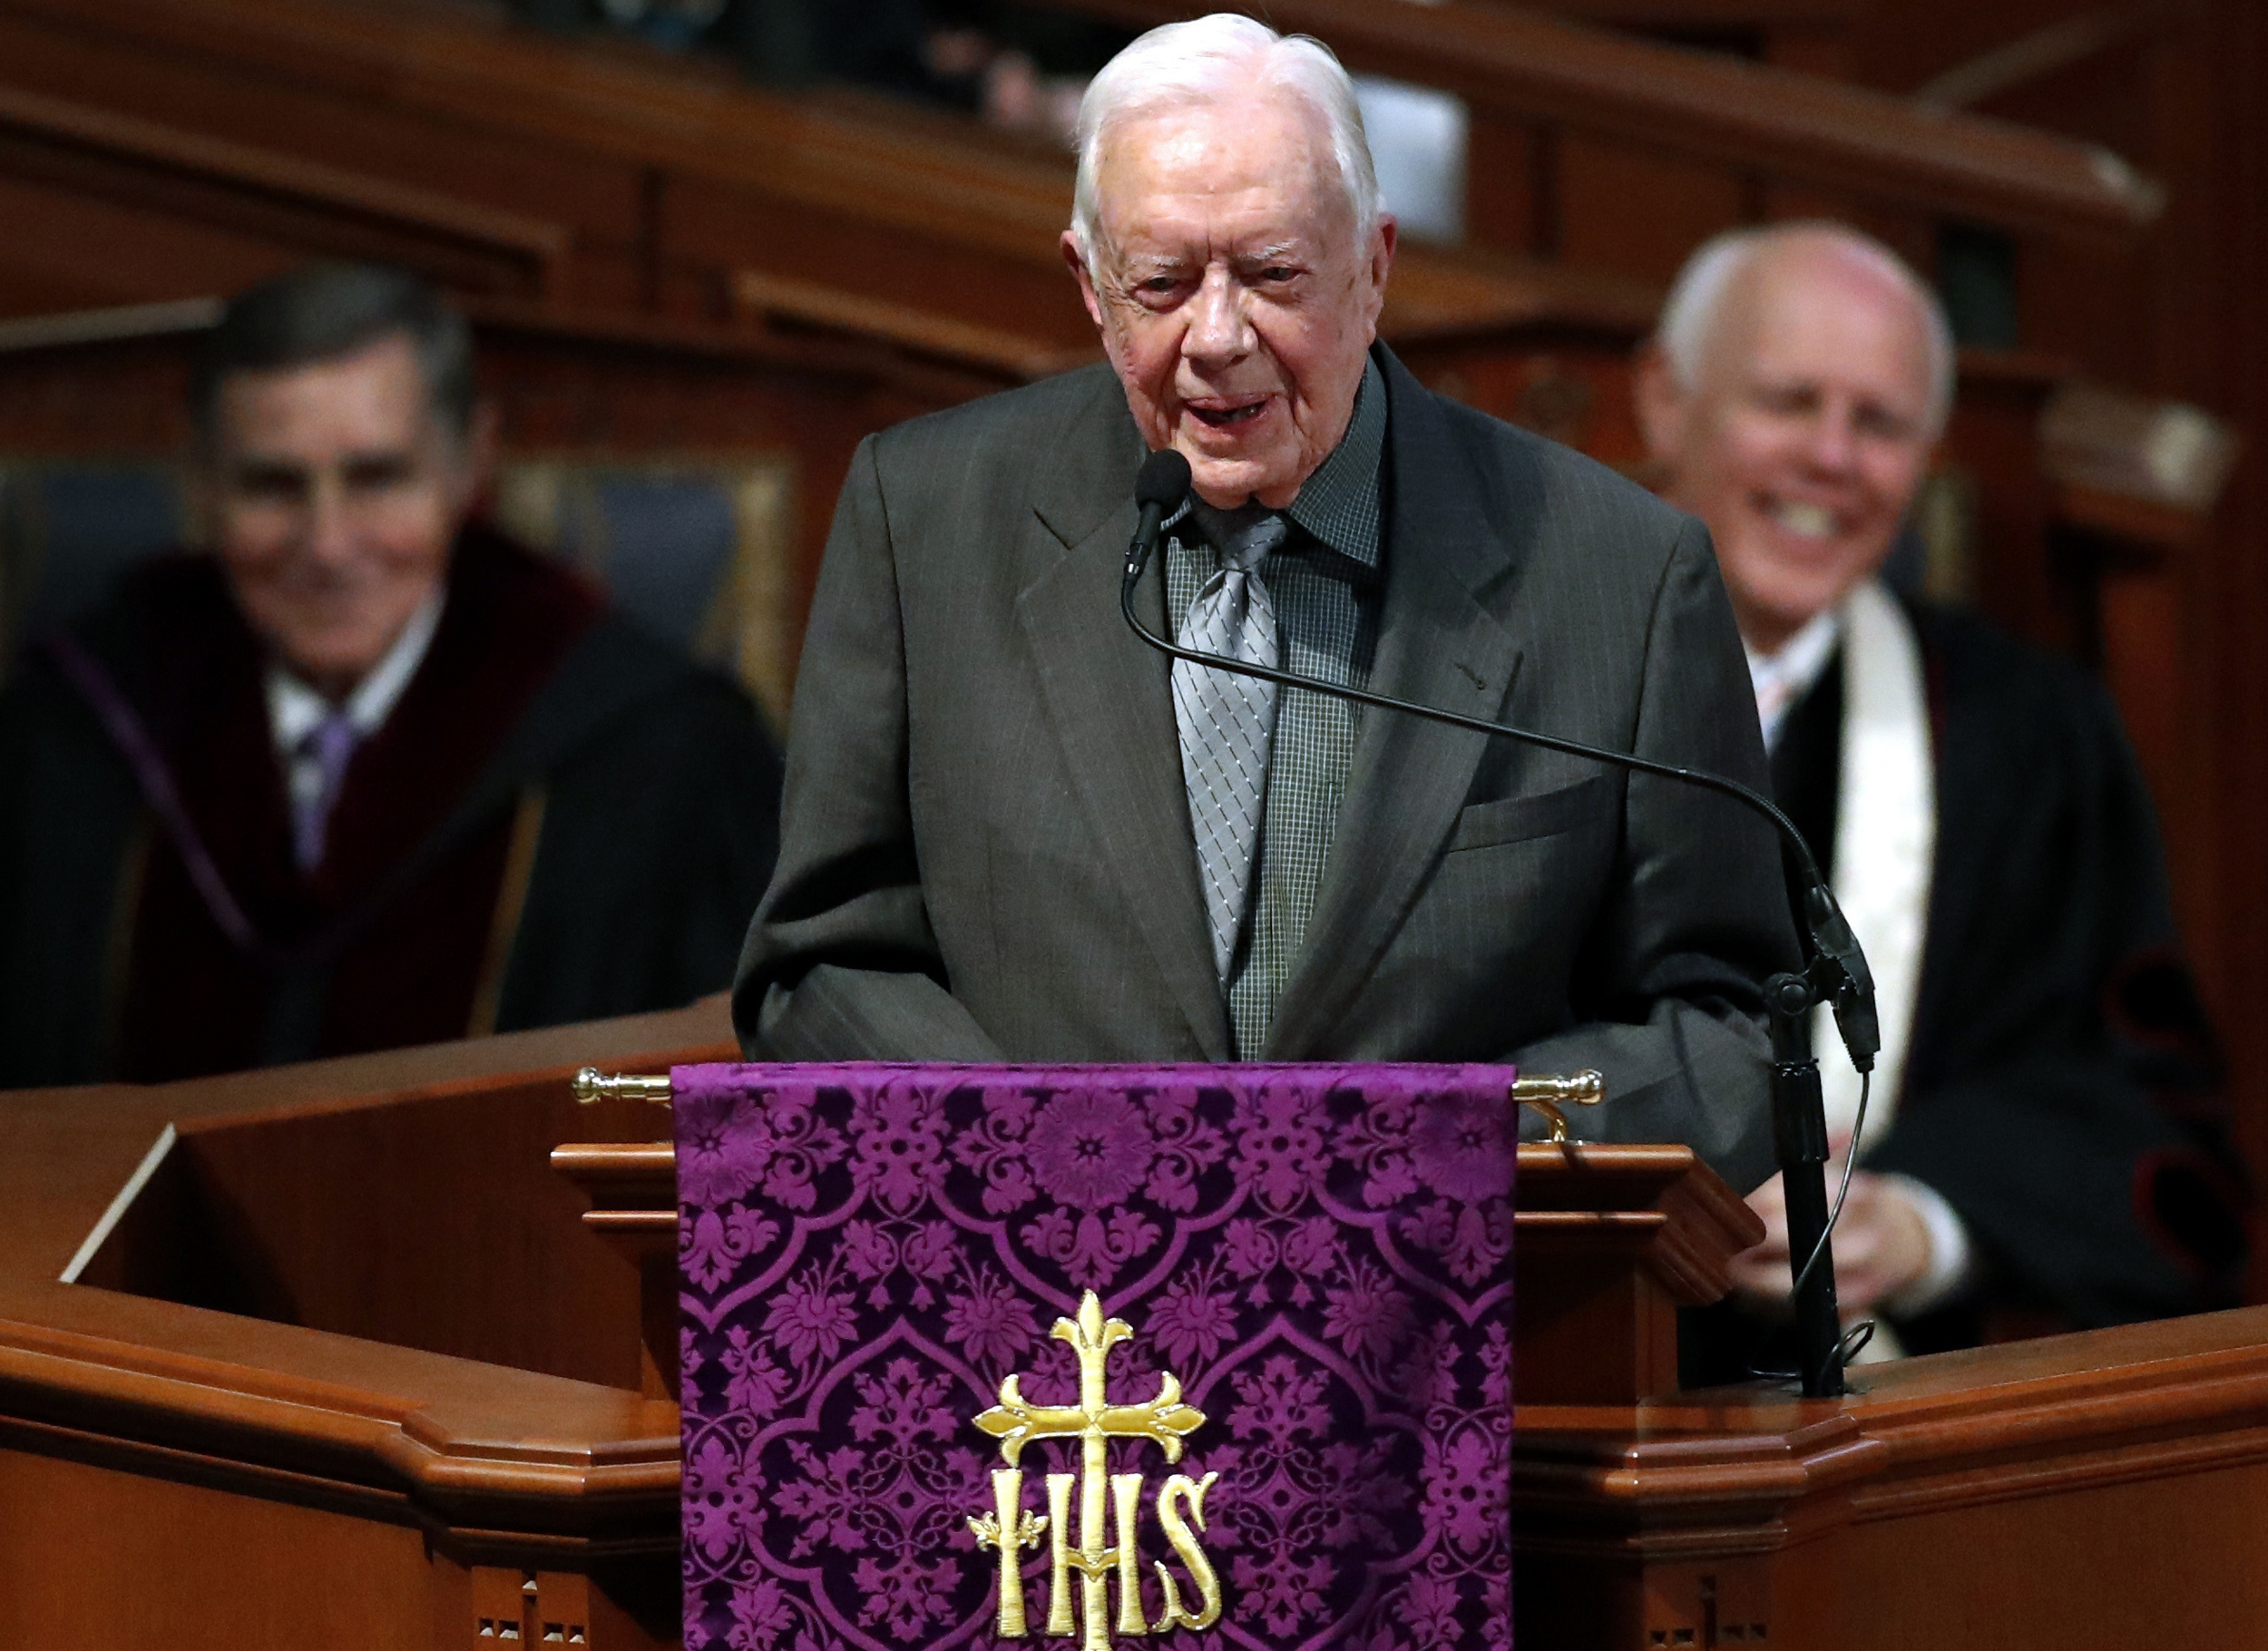 Jimmy Carter to skip Sunday school duties while recovering from broken hip